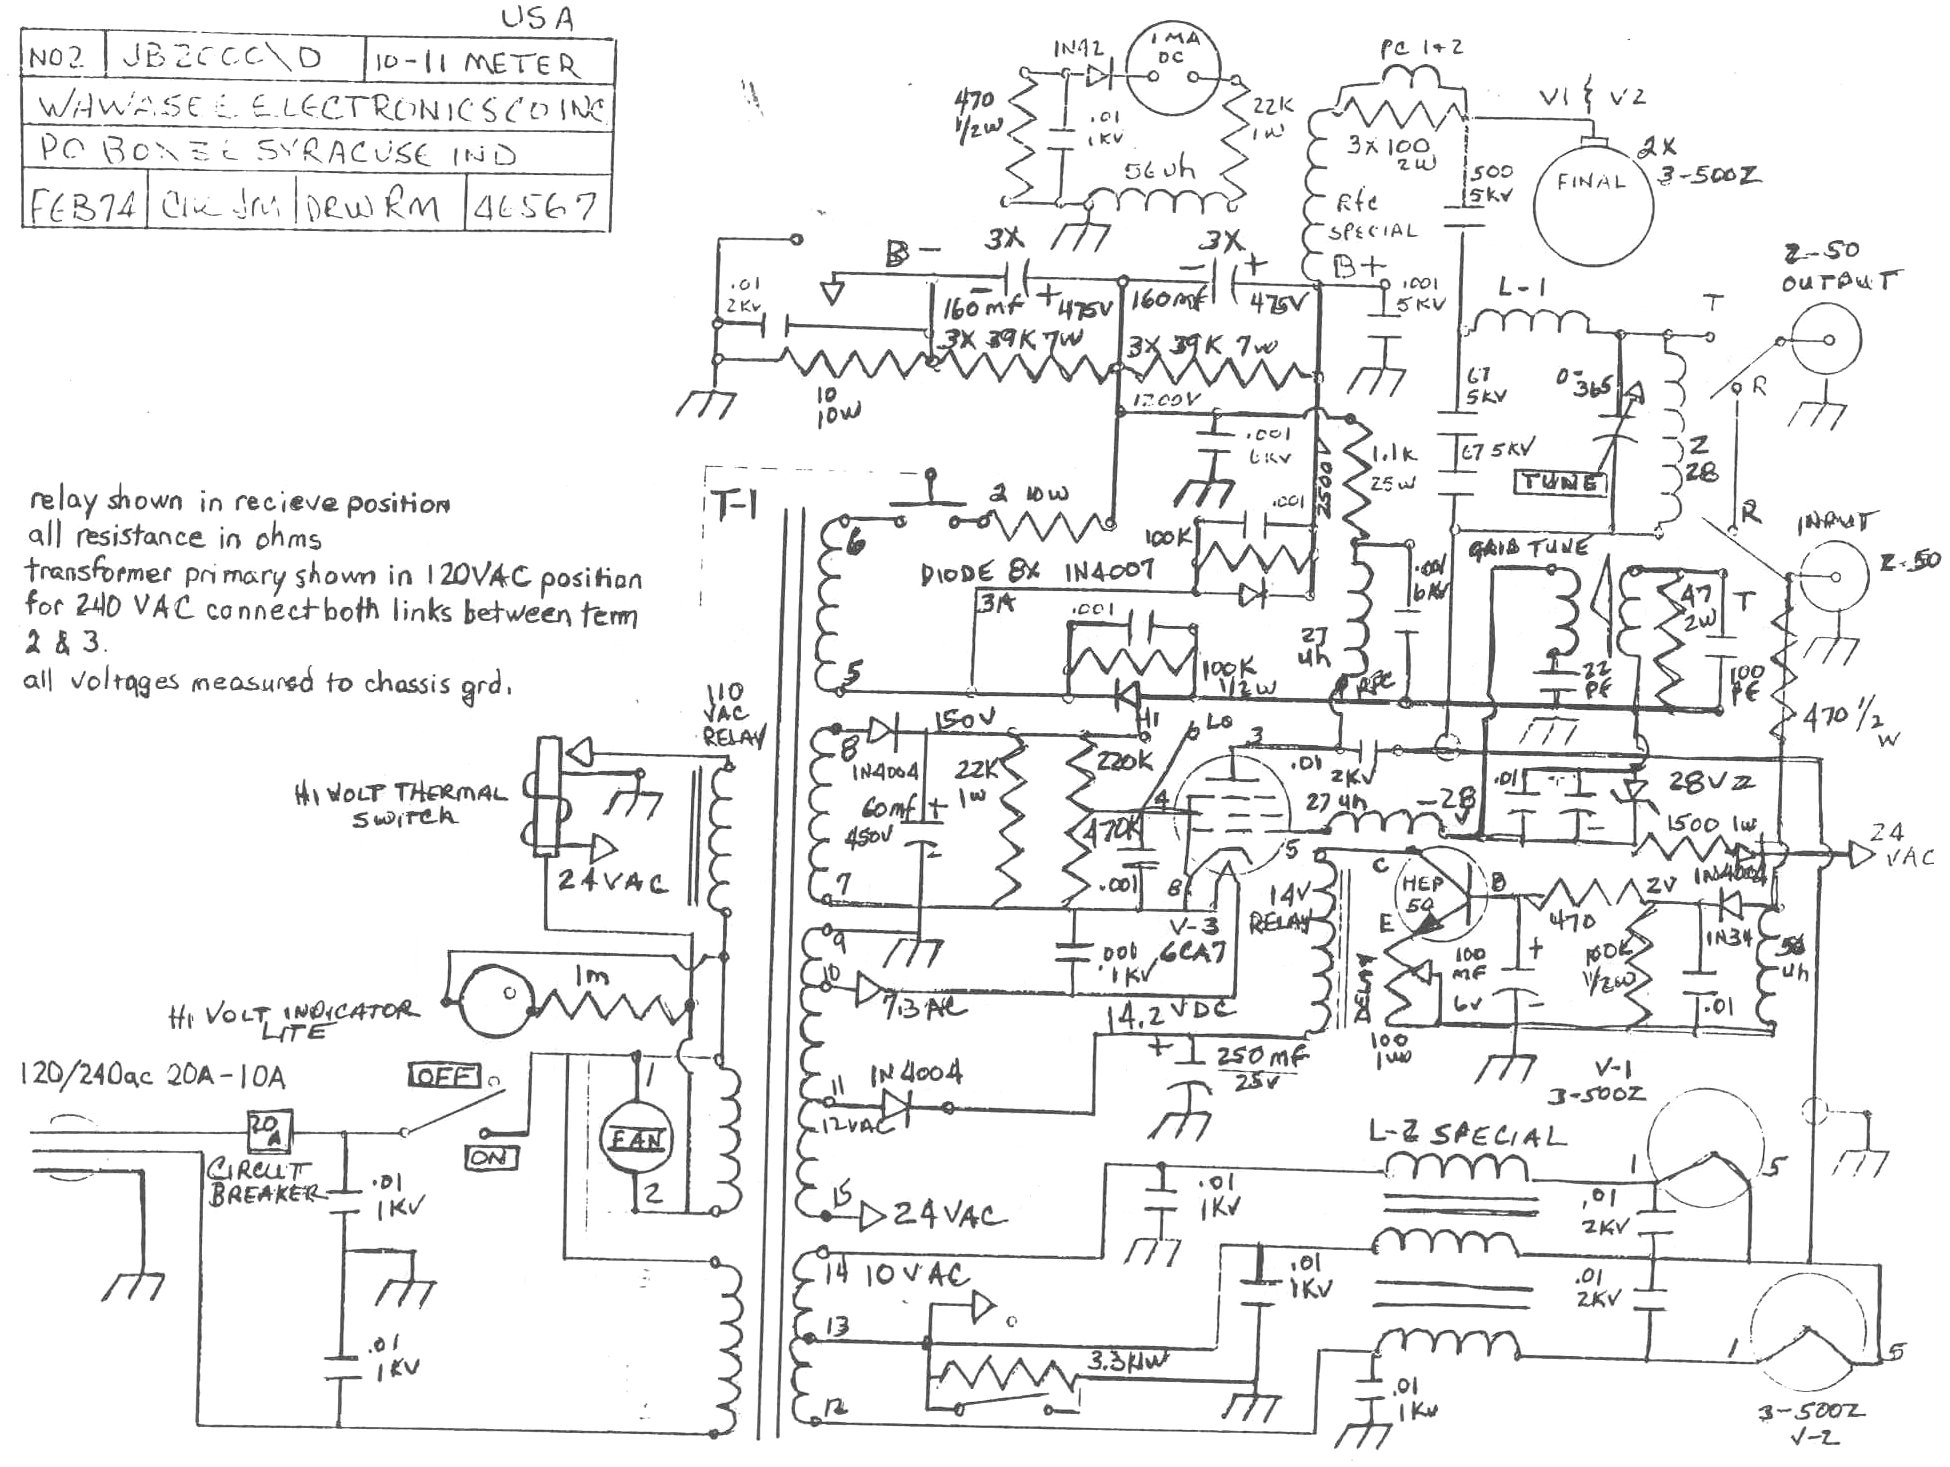 1994 Toyota Pickup Wiring Diagram additionally Rf  lifier Circuits also 1968 Pontiac Firebird Starter Wiring Diagram together with Multimode3 furthermore Lemo Wiring Diagram. on cb radio diagrams